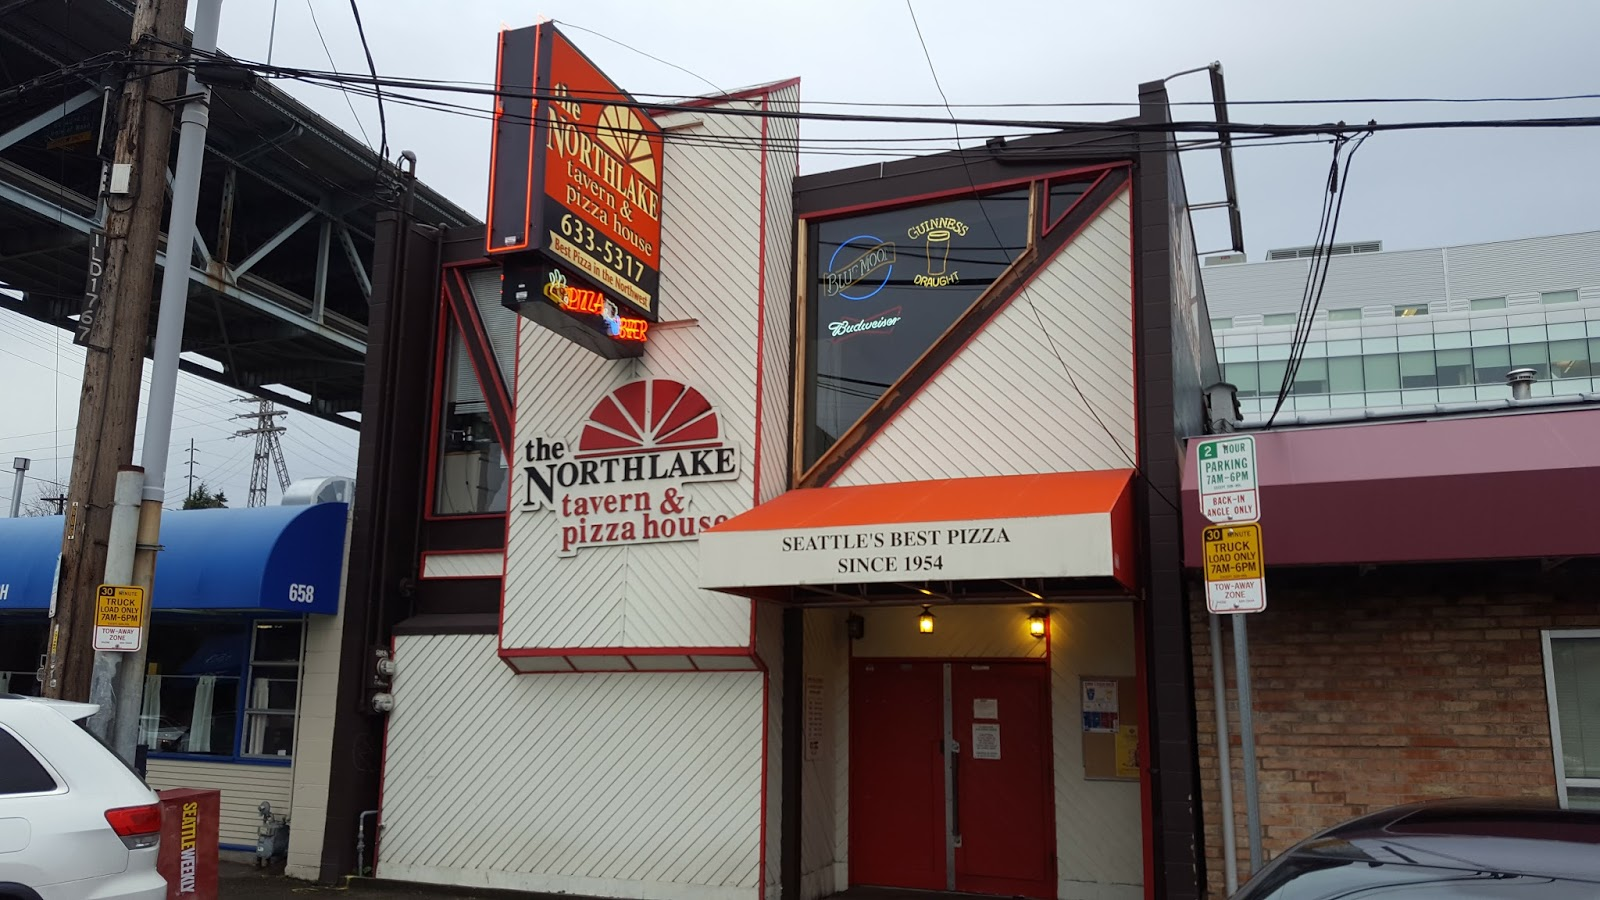 Jeeps pubs taverns and bars northlake tavern and pizza house seattle washington u s a - Round table pizza university place ...